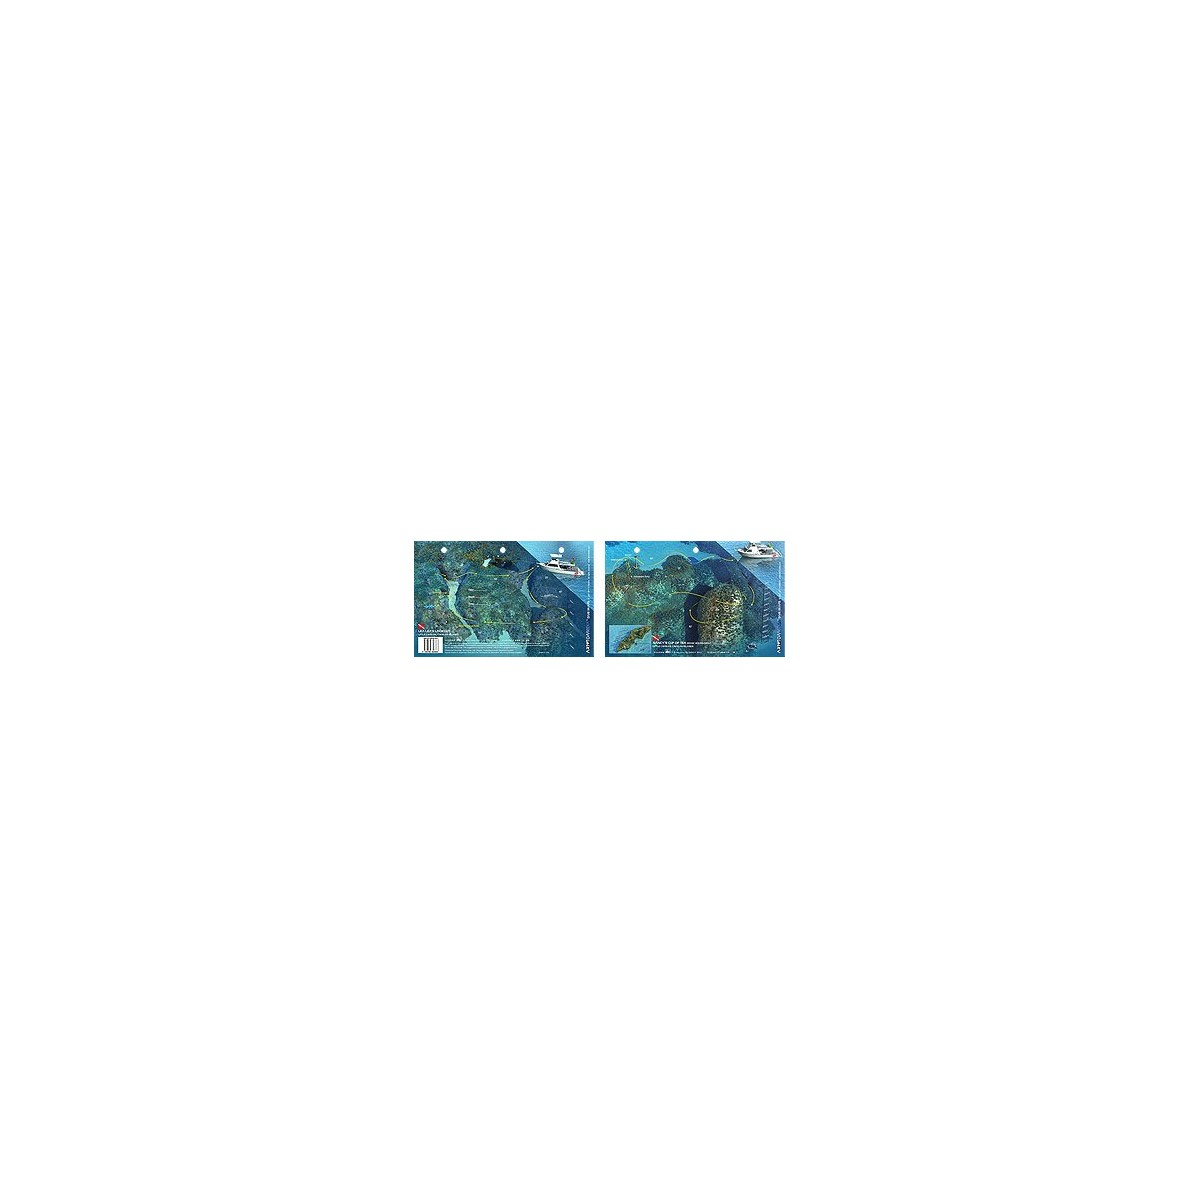 Stingray City in Grand Cayman, Cayman Islands - New Art to Media Underwater Waterproof 3D Dive Site Map